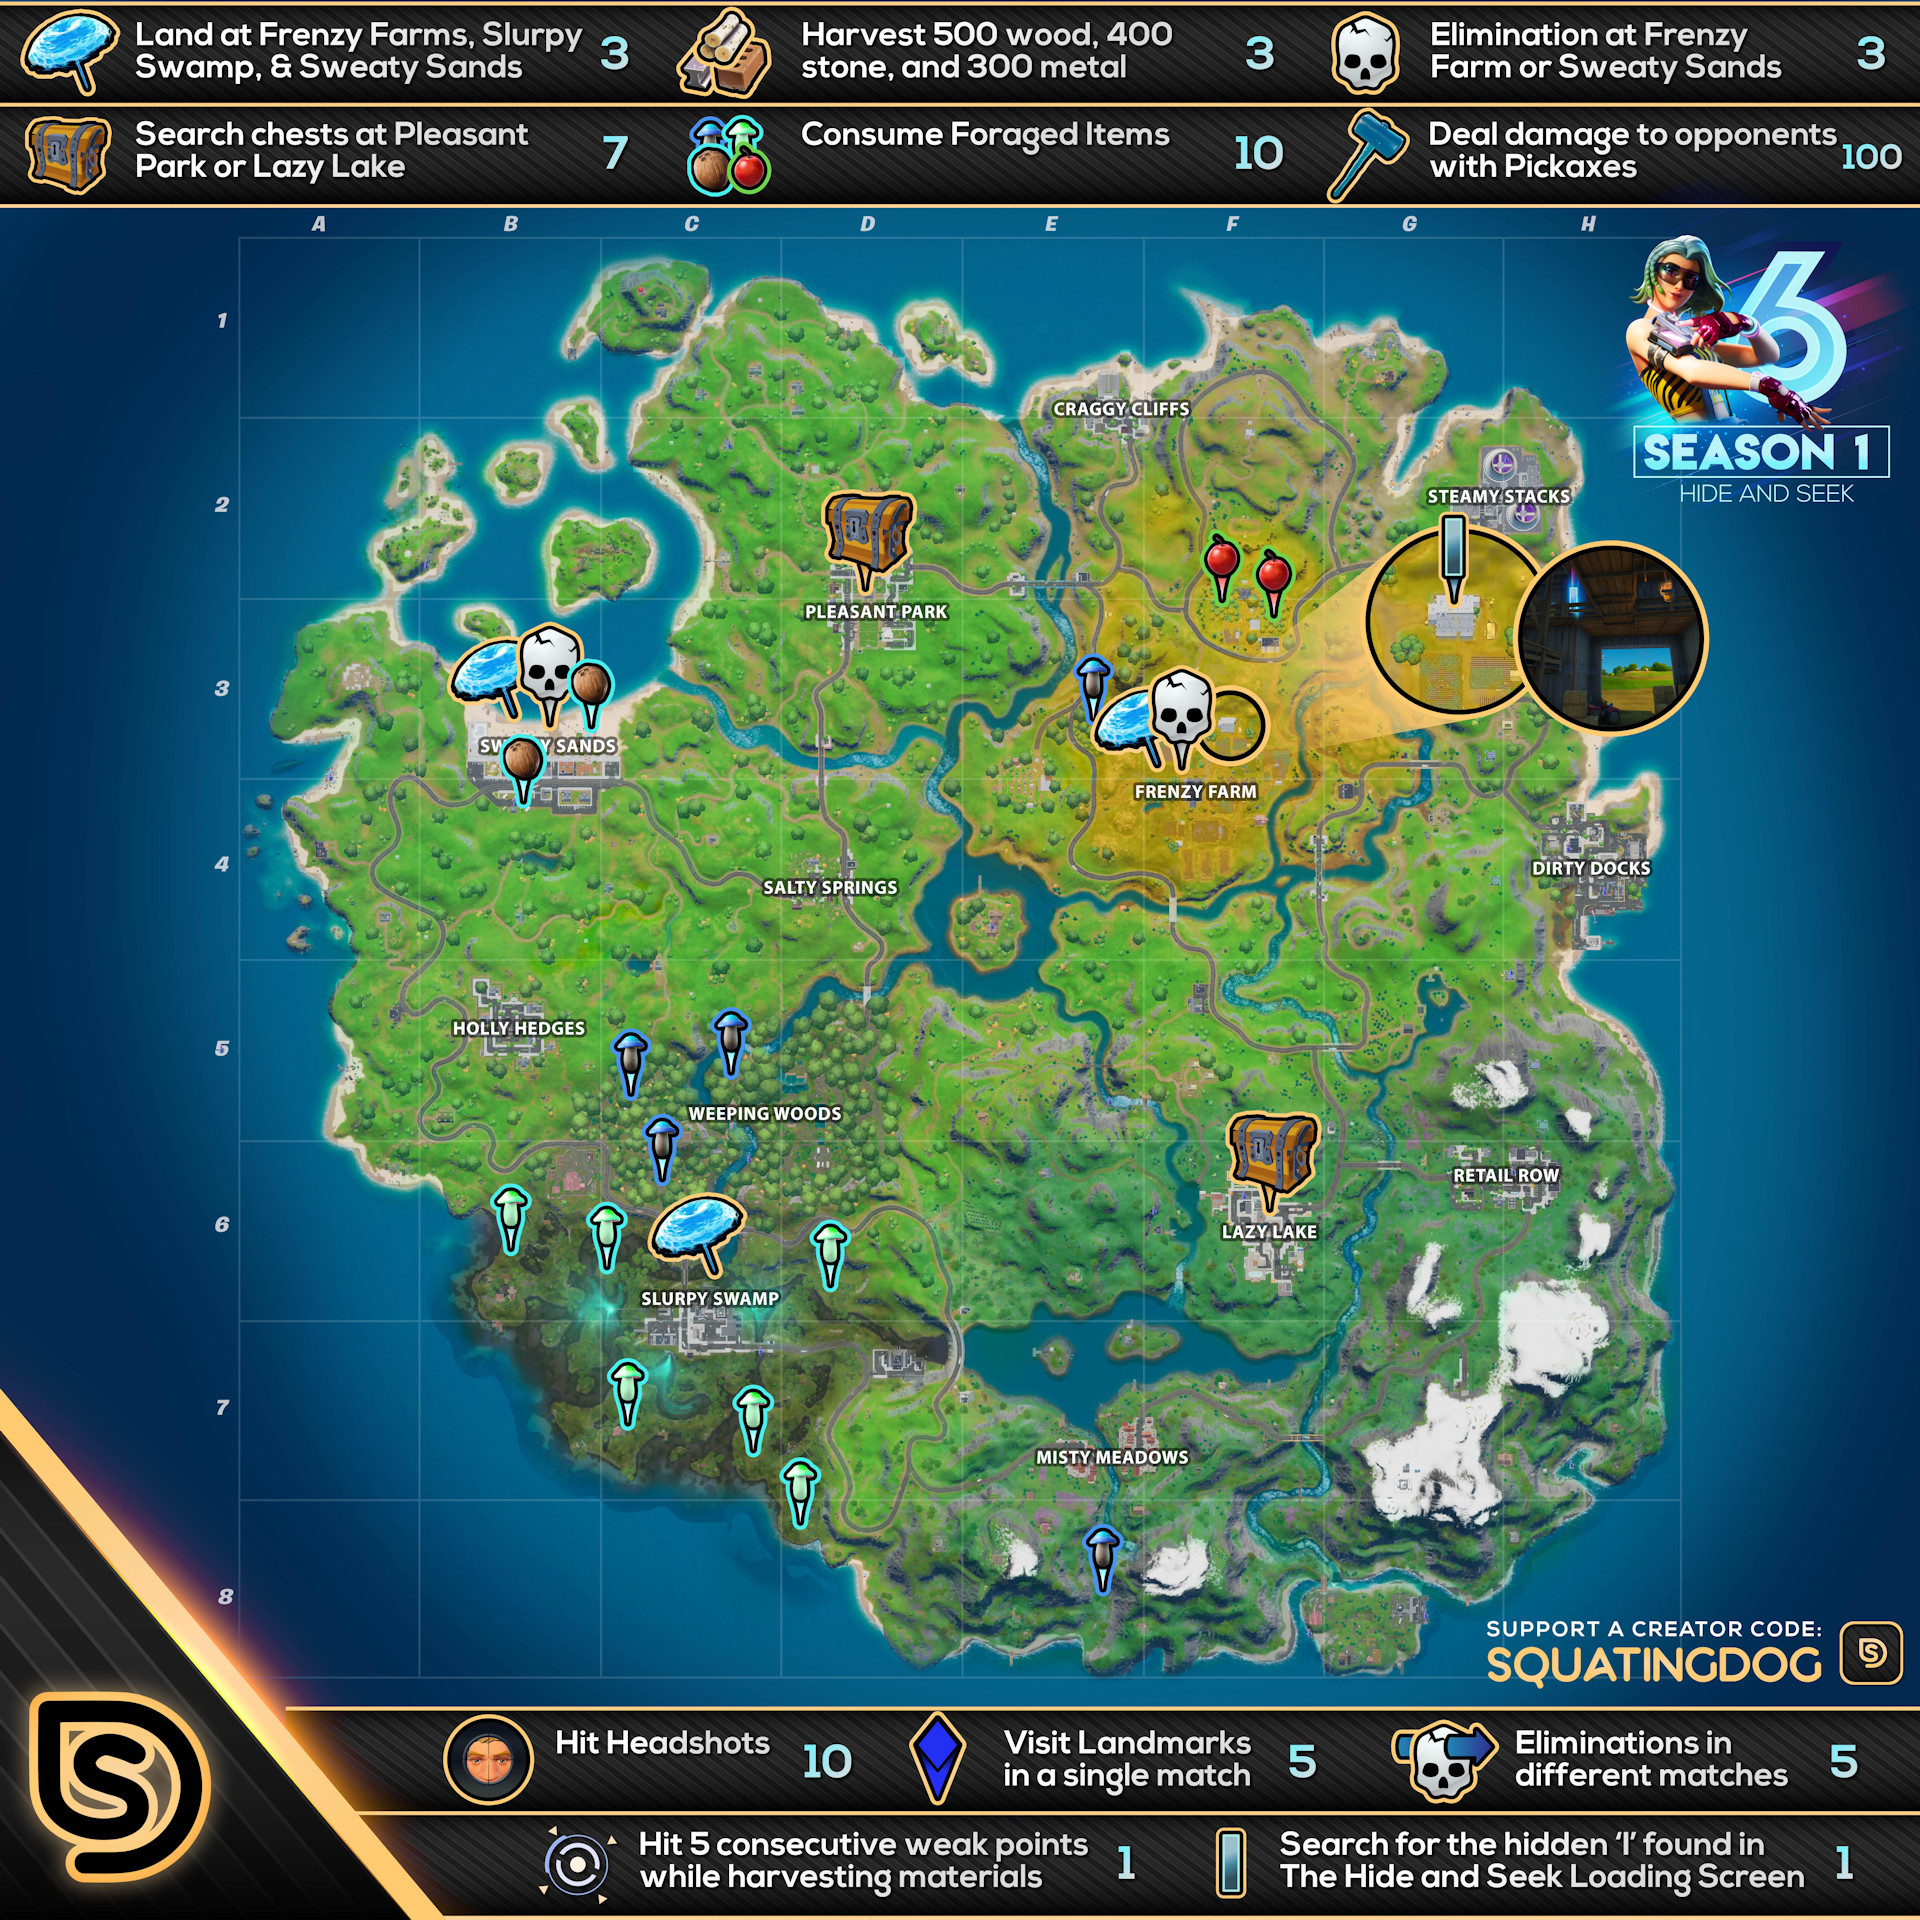 Fortnite Chapter 2 Hide and Seek Challenges Cheat Sheet